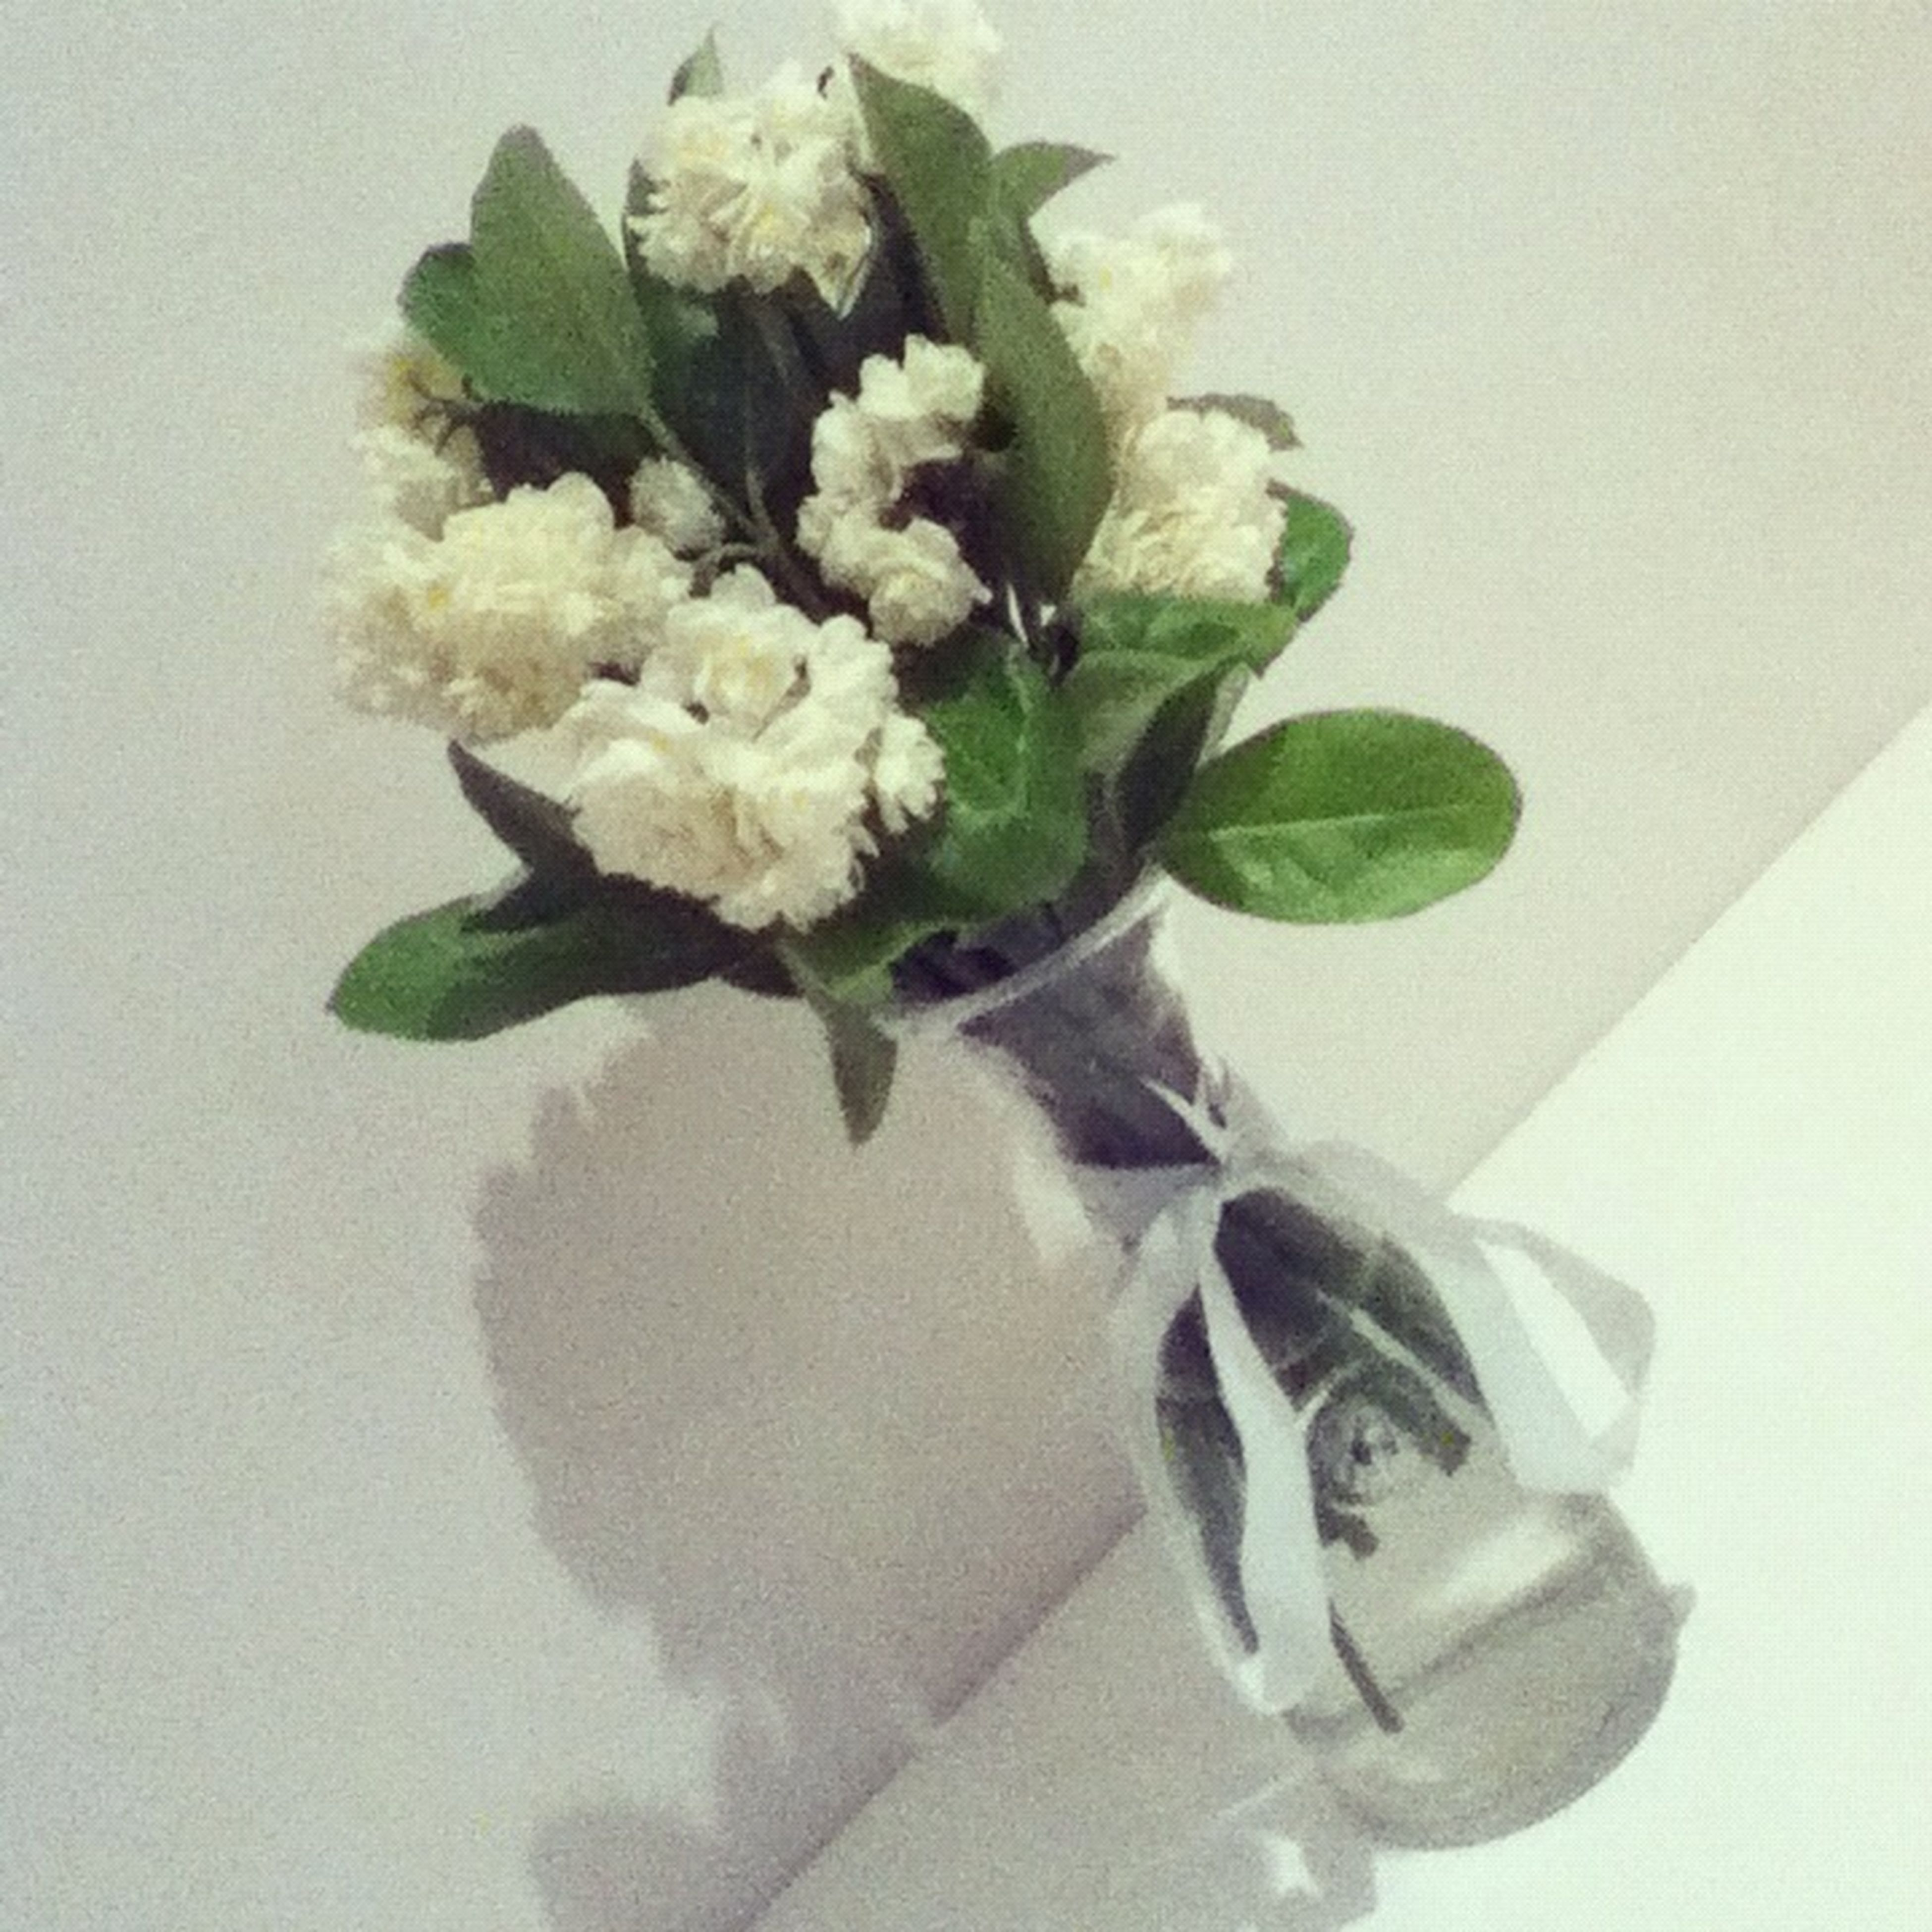 flower, indoors, freshness, leaf, fragility, vase, white color, plant, high angle view, close-up, table, petal, potted plant, growth, nature, flower head, bunch of flowers, bouquet, home interior, green color